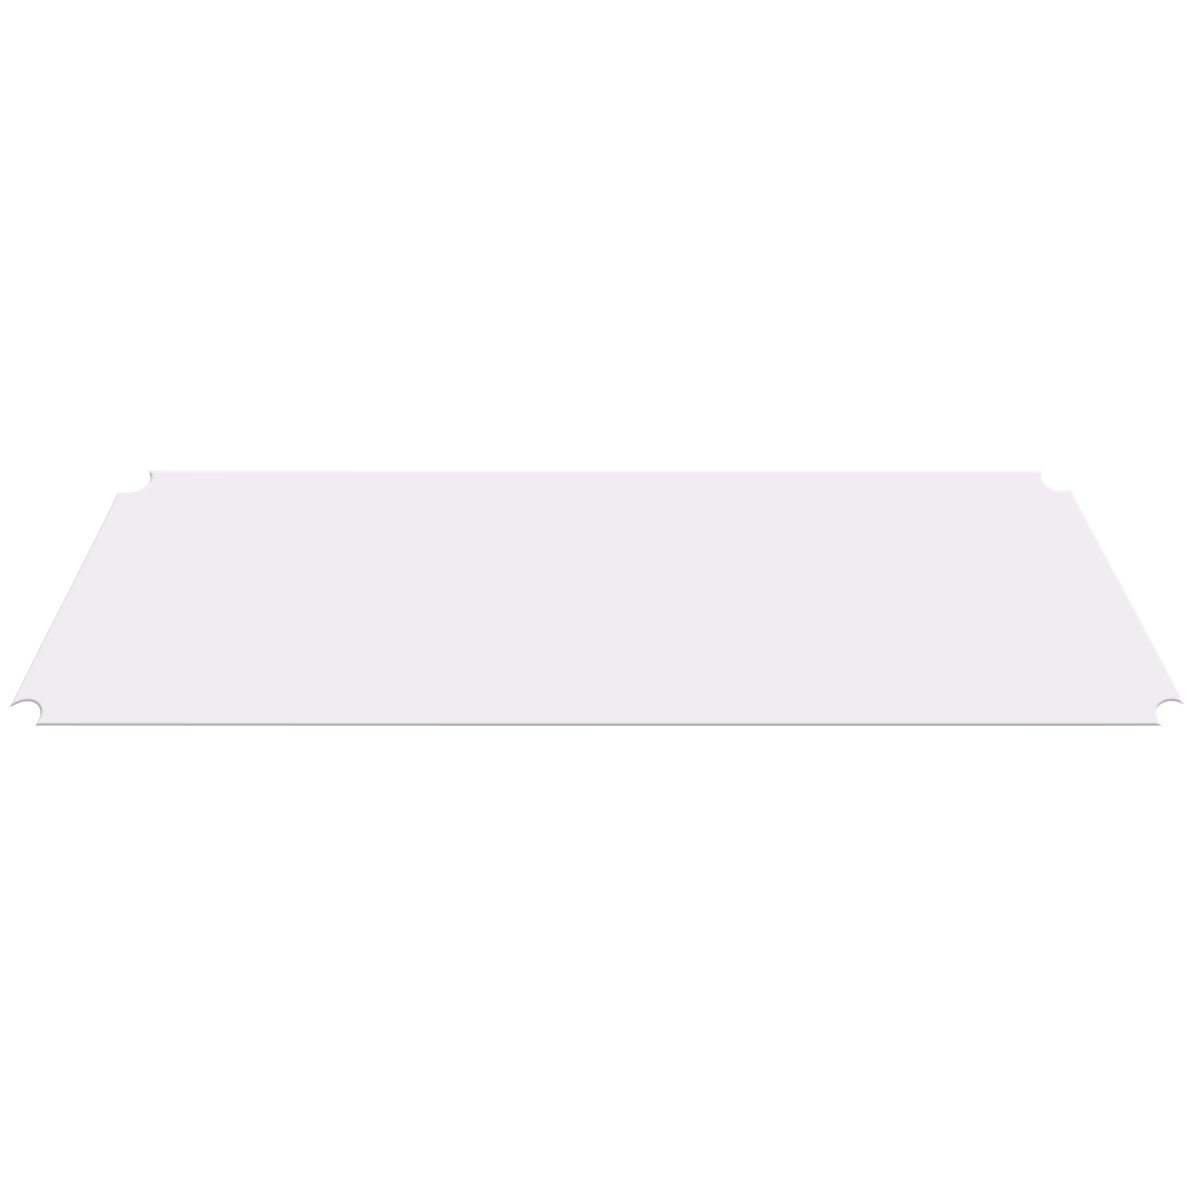 Akro-Mils AW1236LINER 12-Inch X 36-Inch Clear Shelf Liner for Chrome Wire Shelf, 4-Pack